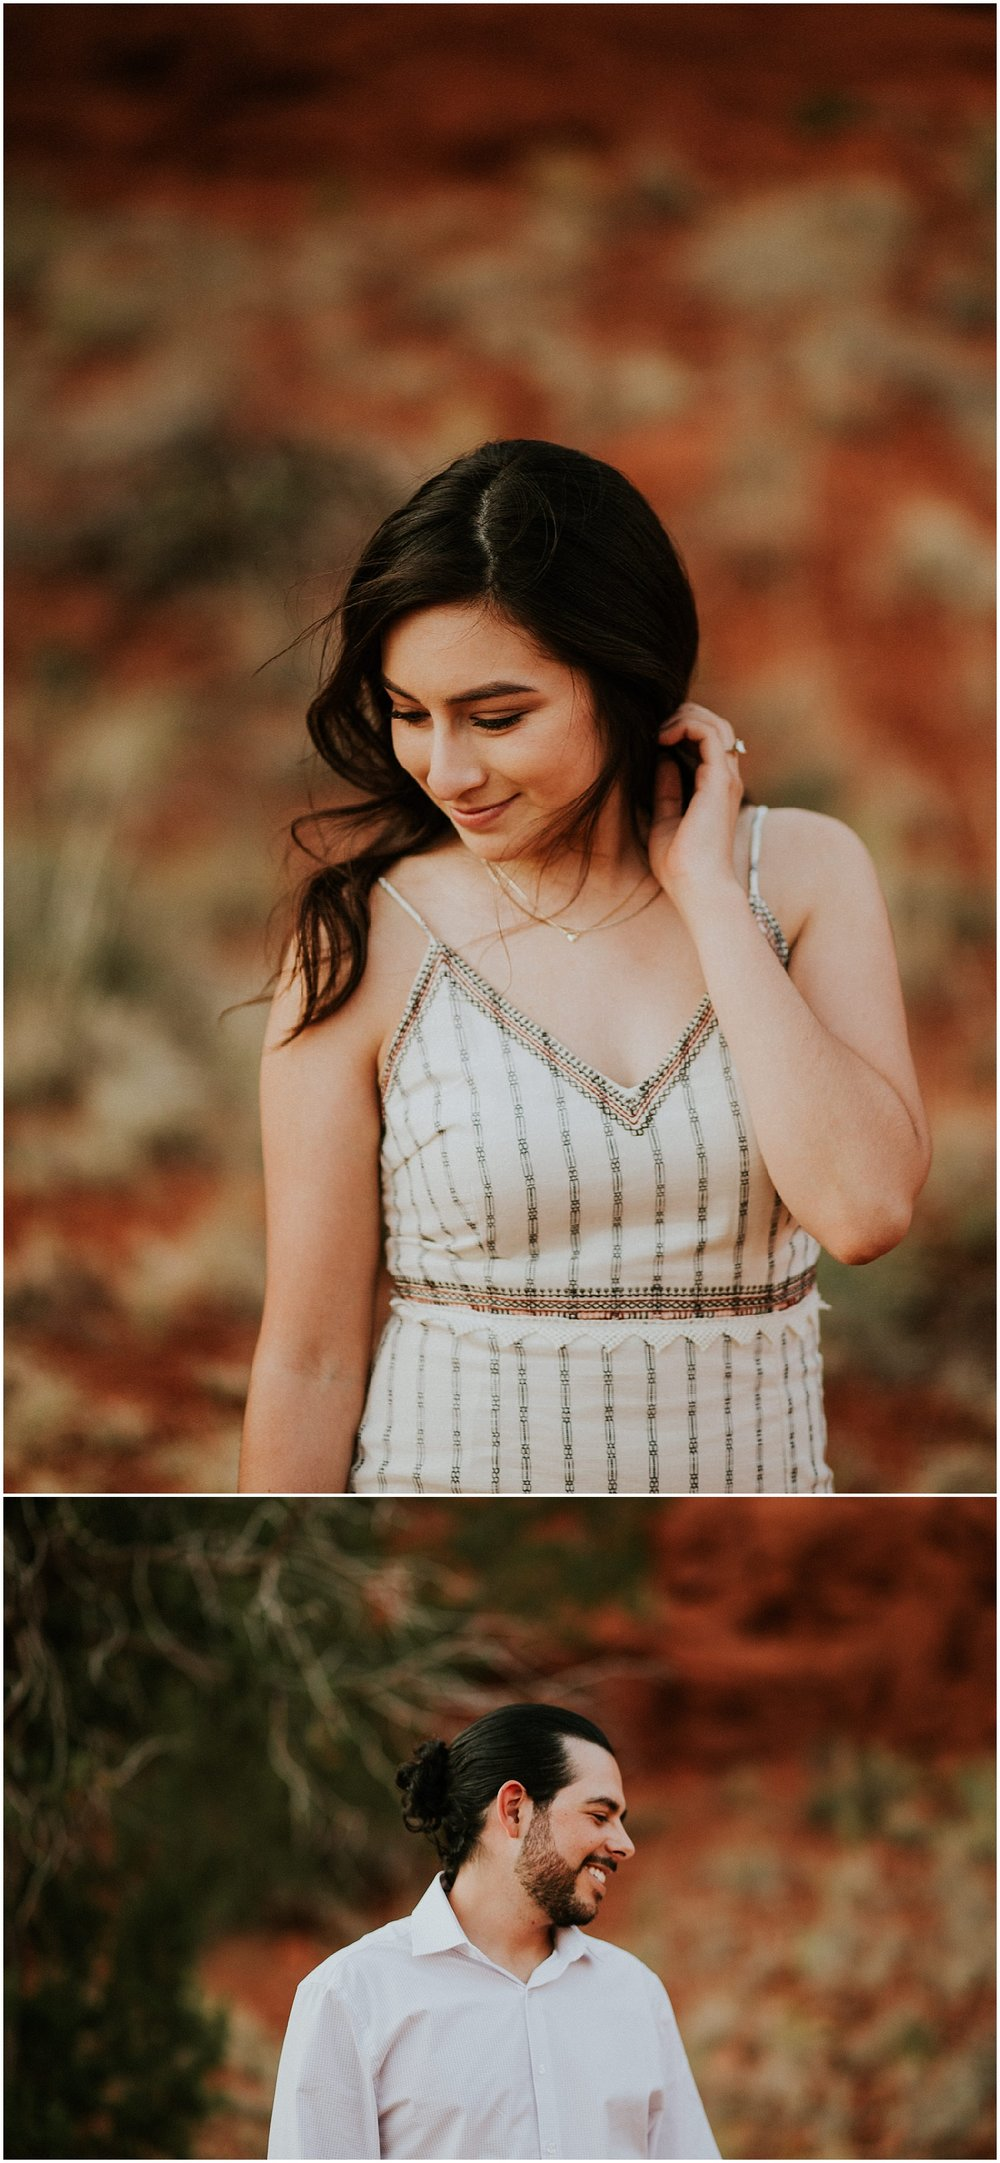 I met Tammy + Mike in the wonderfully scenic Jemez Springs to document their love. Guys, their engagement sesh will ALWAYS be LITERAL GOALS AF. Tammy wore a beautiful dress from Wanderer and Mike was looking mighty dapper. Shooting in Jemez is an incredible delight that would make any photographer have a happy dance. Jemez has a variety of beauty whether it's the lush greenery or the beautiful red rocks. I had a blast with these cuties and to this day this is one of my absolute favorite engagements sessions EVER!